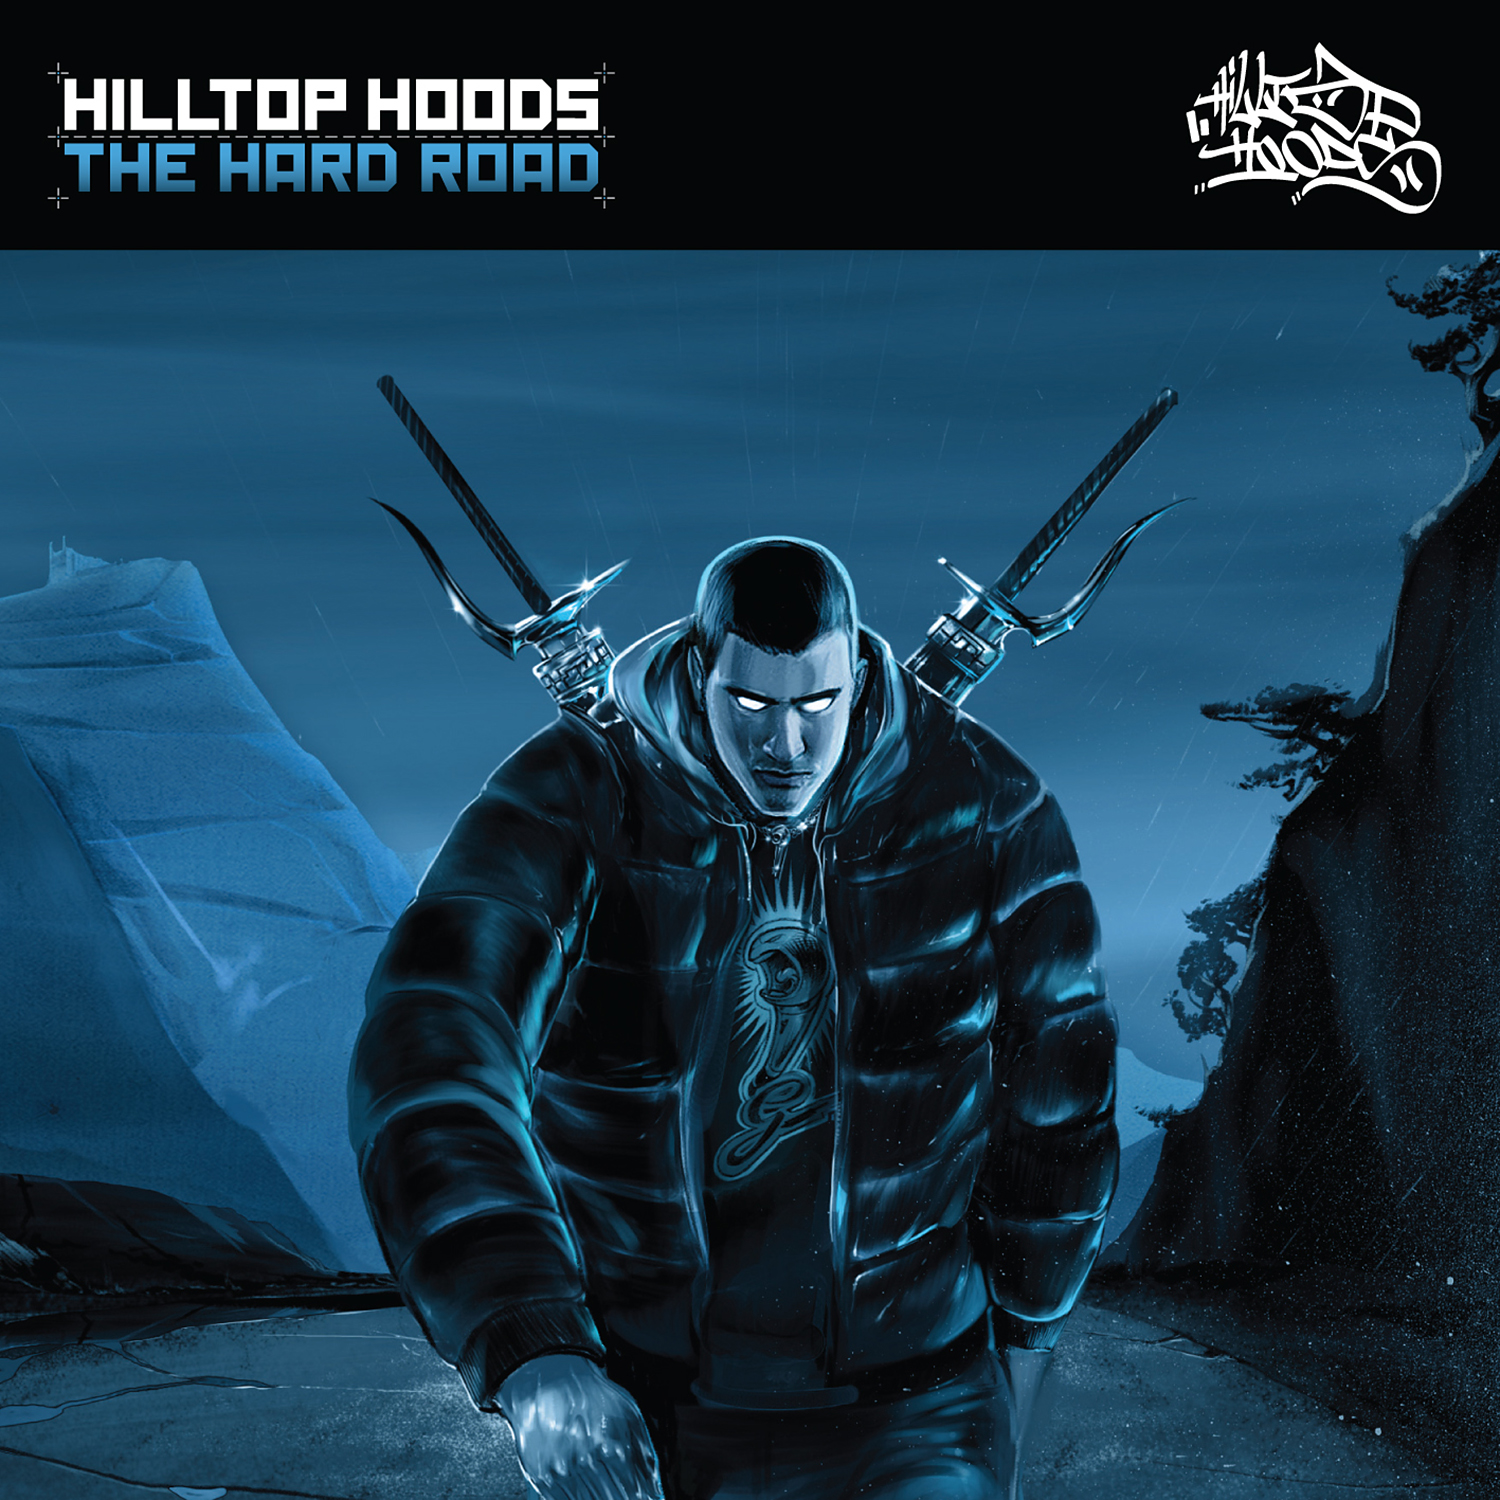 HILLTOP HOODS: THE HARD ROAD